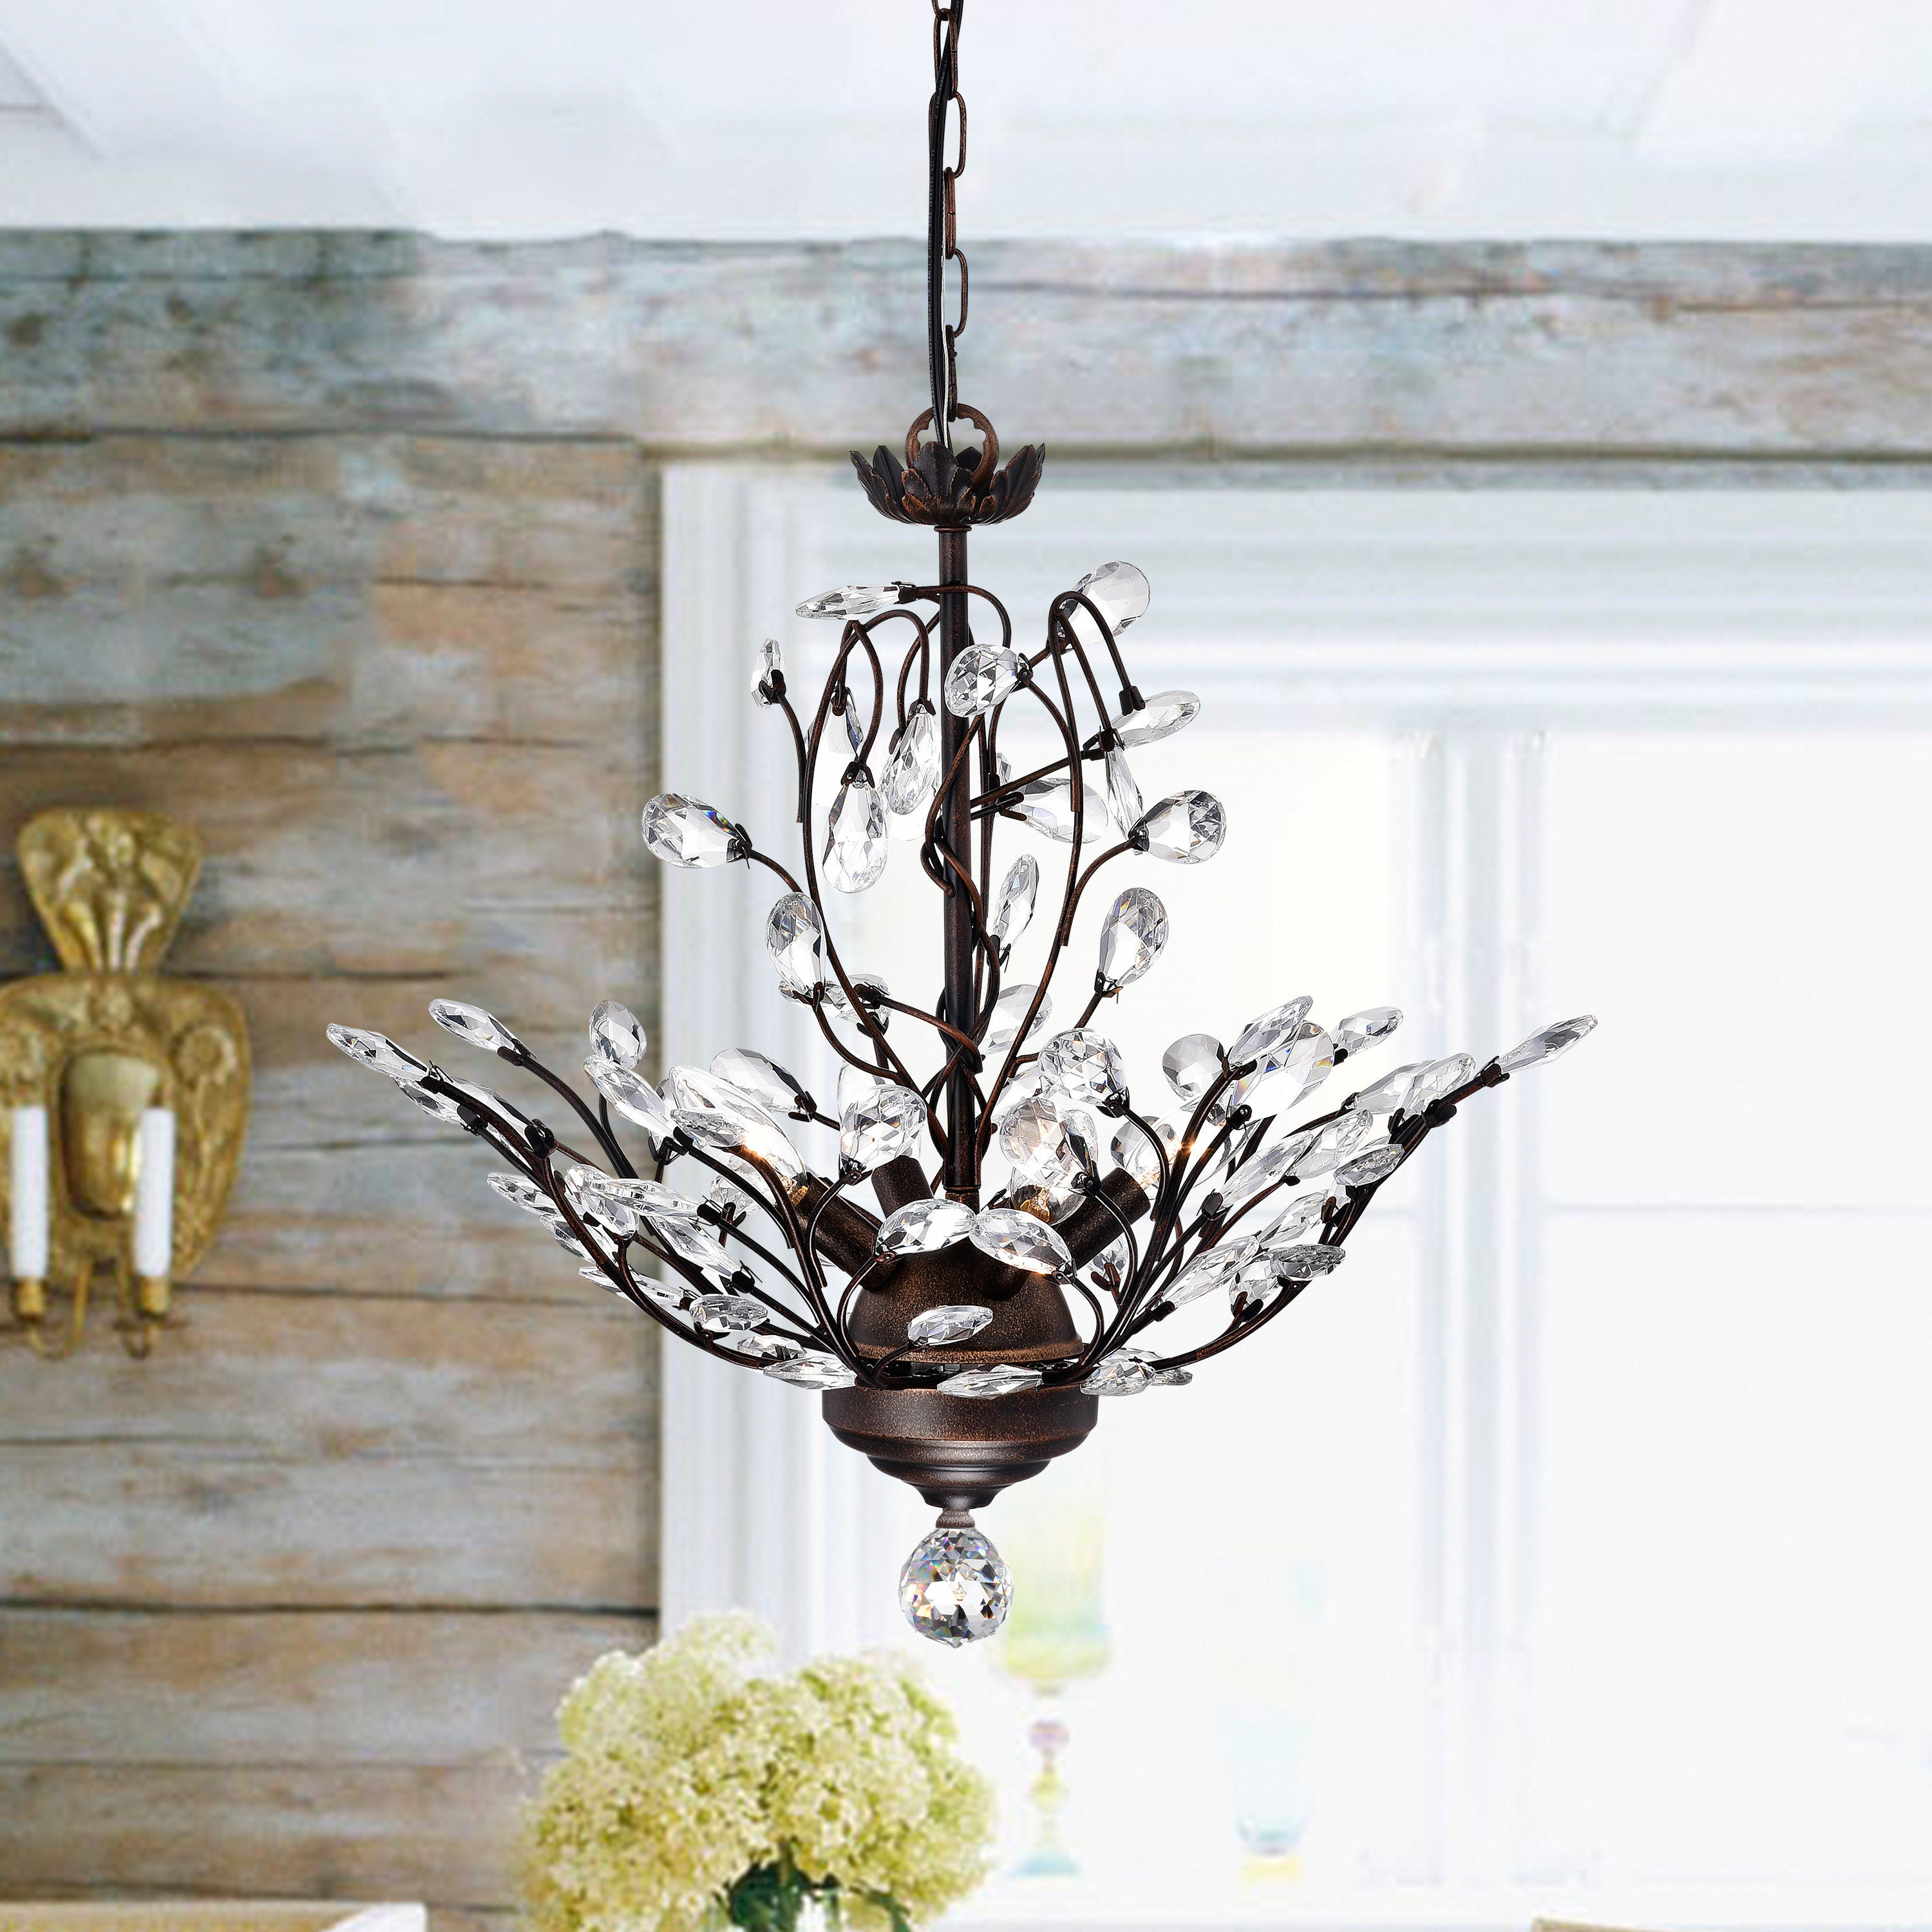 Hermione 5 Light Drum Chandeliers Regarding Most Up To Date Farmhouse & Rustic Willa Arlo Interiors Chandeliers (View 18 of 20)